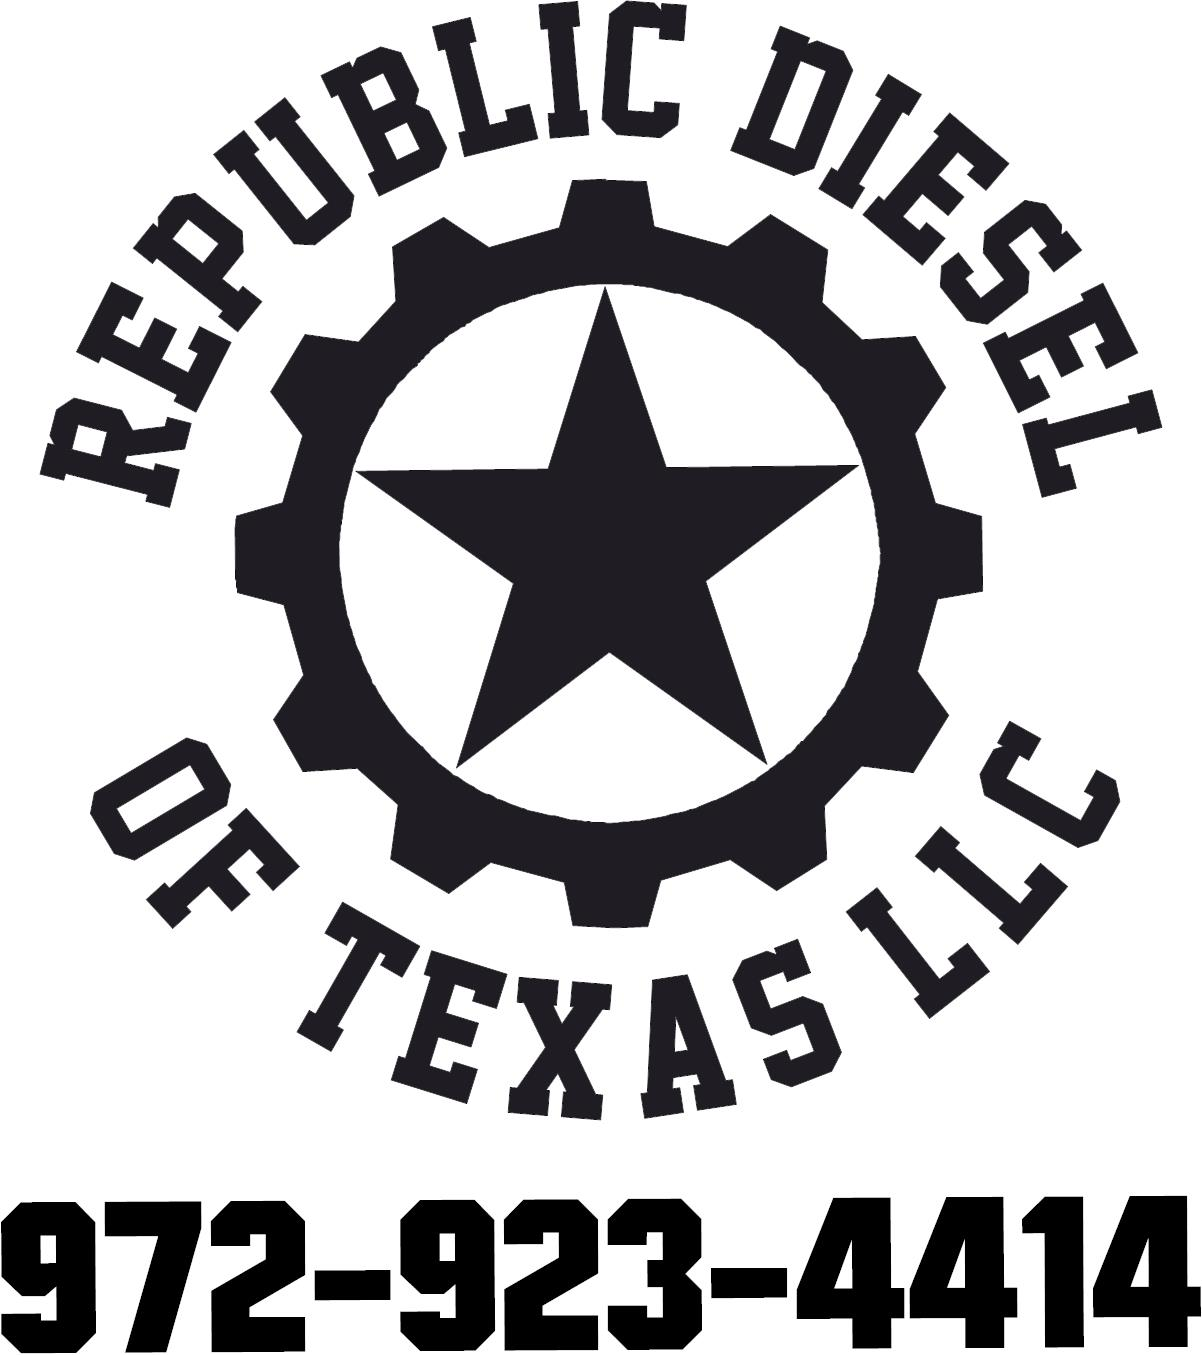 Republic Diesel of Texas, LLC